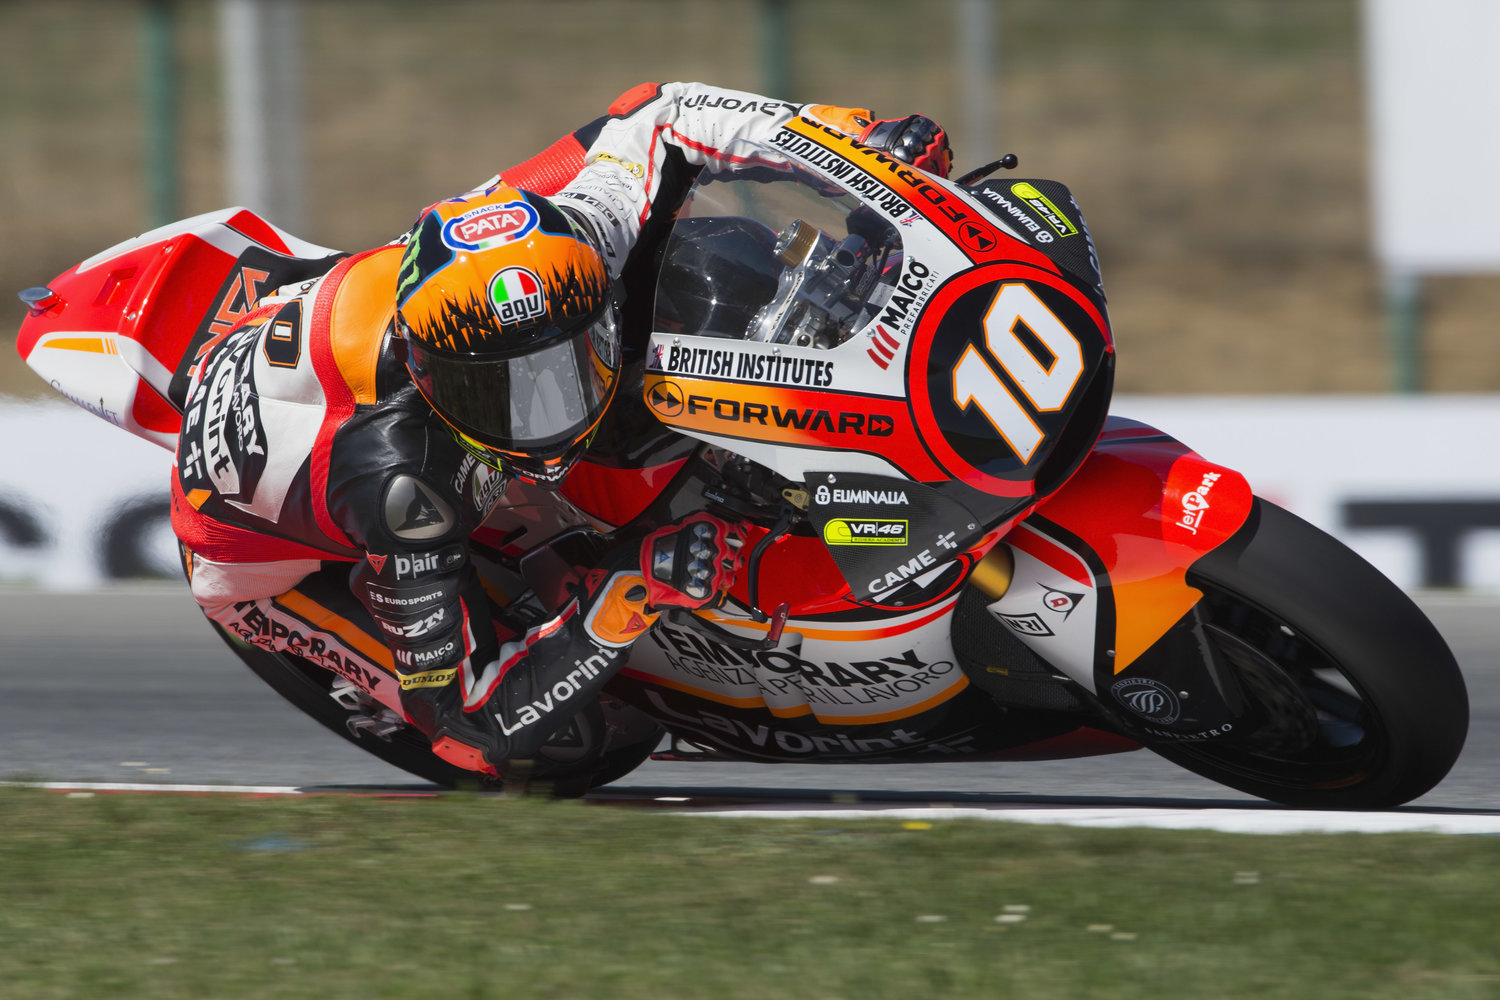 Marini delivers stunning performance in scorching Czech qualifying